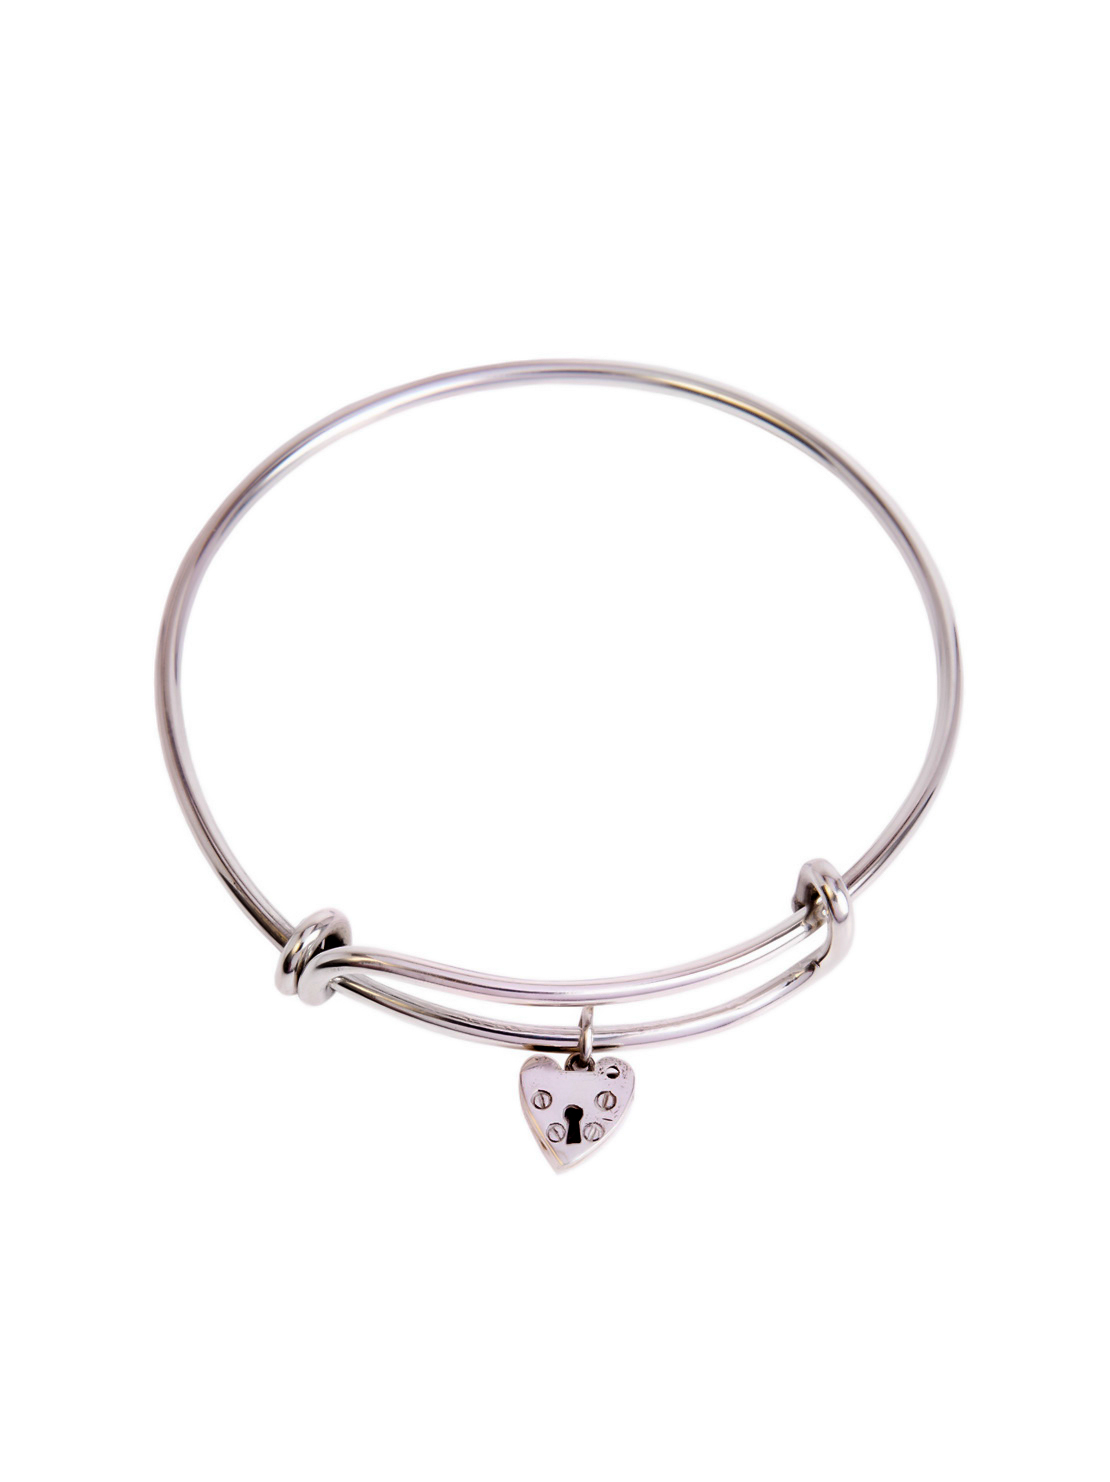 z charm bangles new maman merci personalised bangle